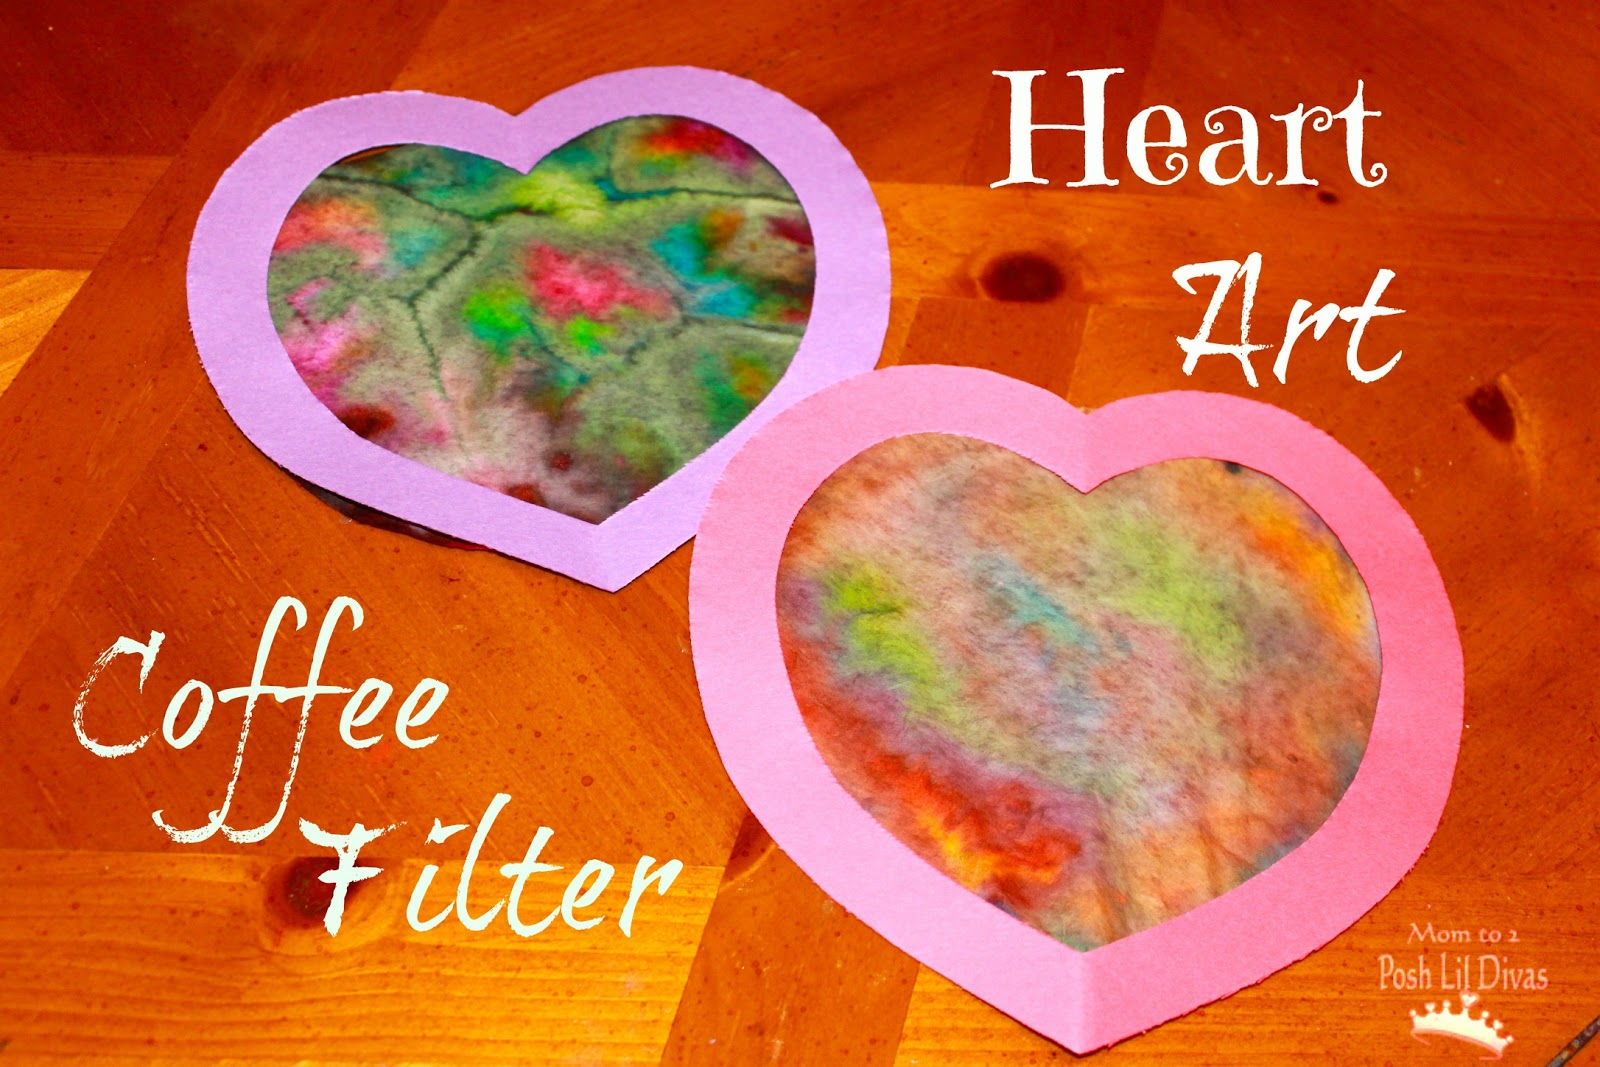 Valentines day art and crafts for preschoolers - Tuesday January 29 2013